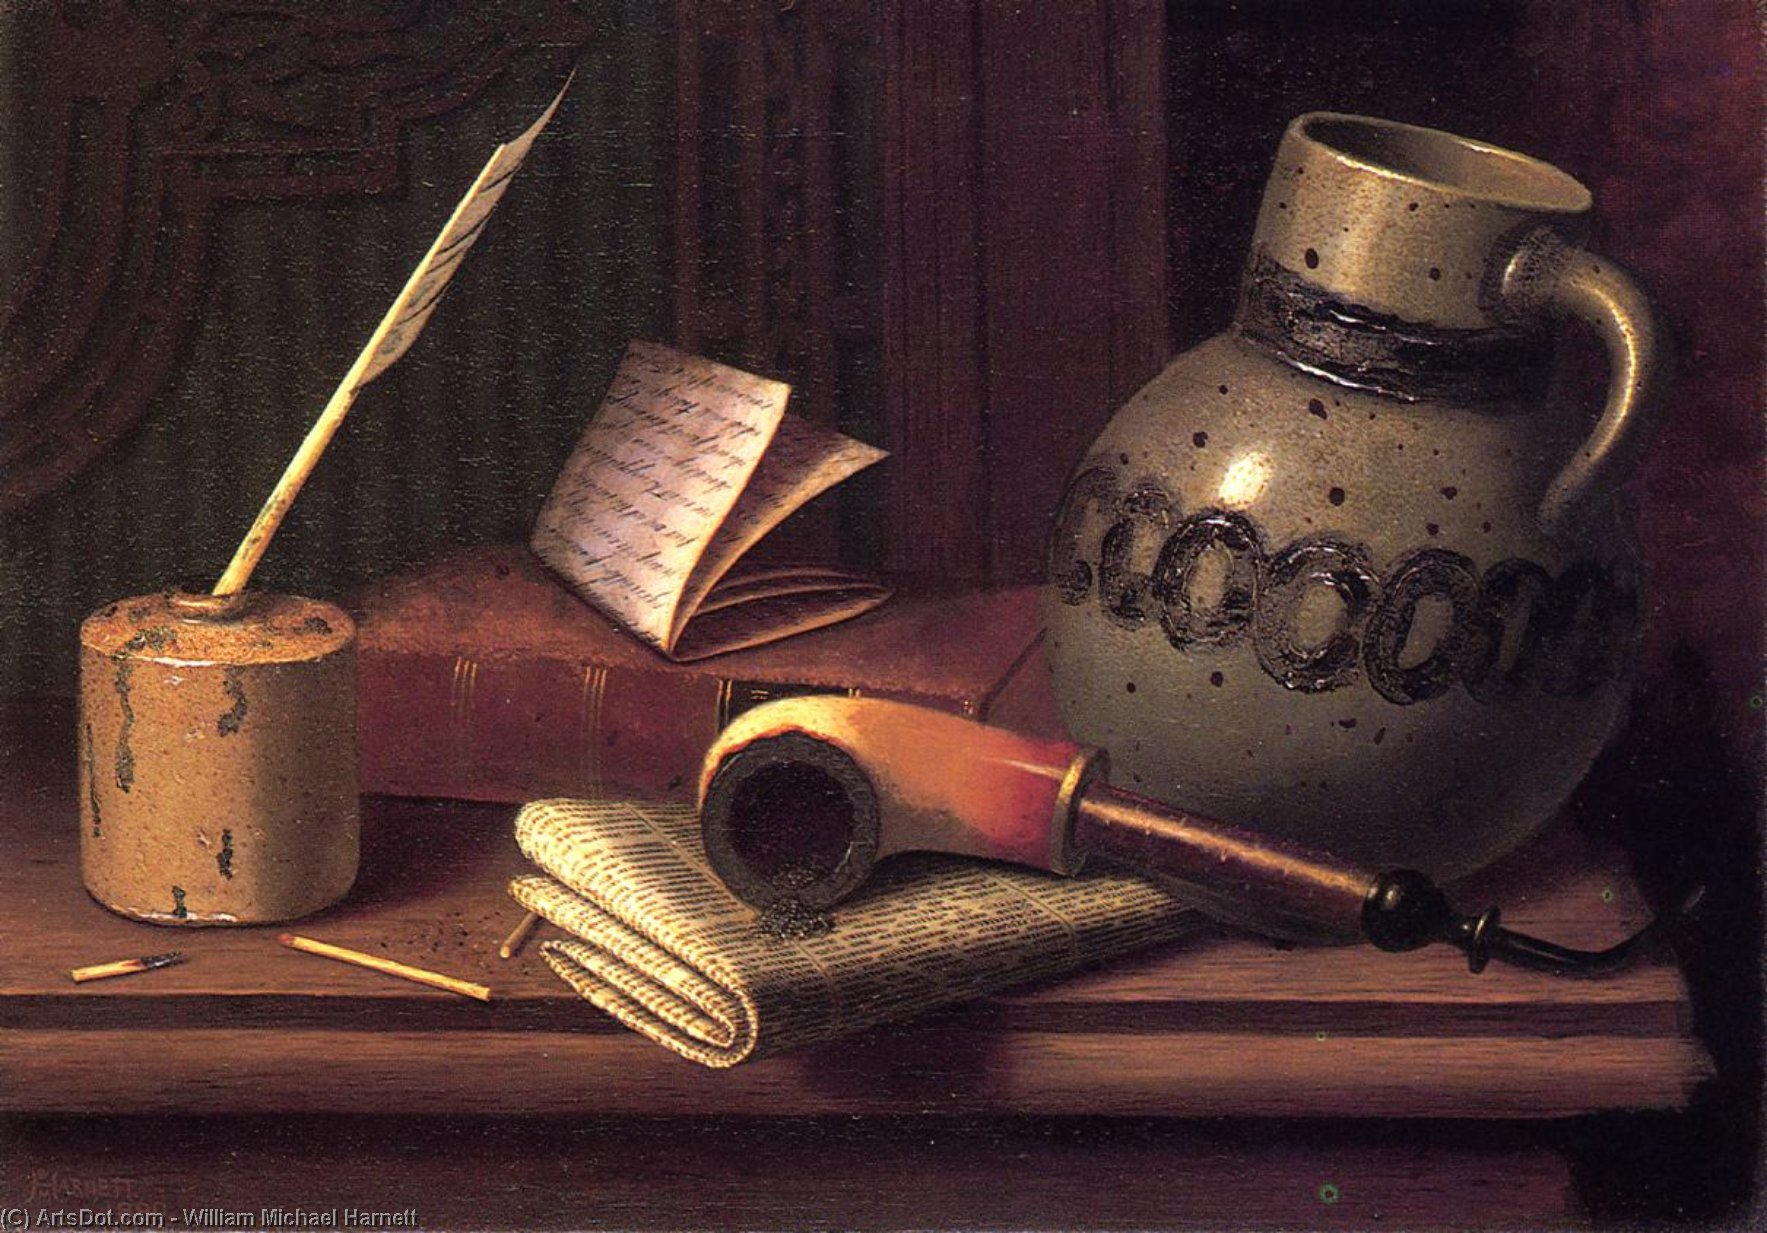 Still Life with Inkwell, Book, Pipe and Stoneware Jug, Oil On Canvas by William Michael Harnett  (order Fine Art Poster on canvas William Michael Harnett)